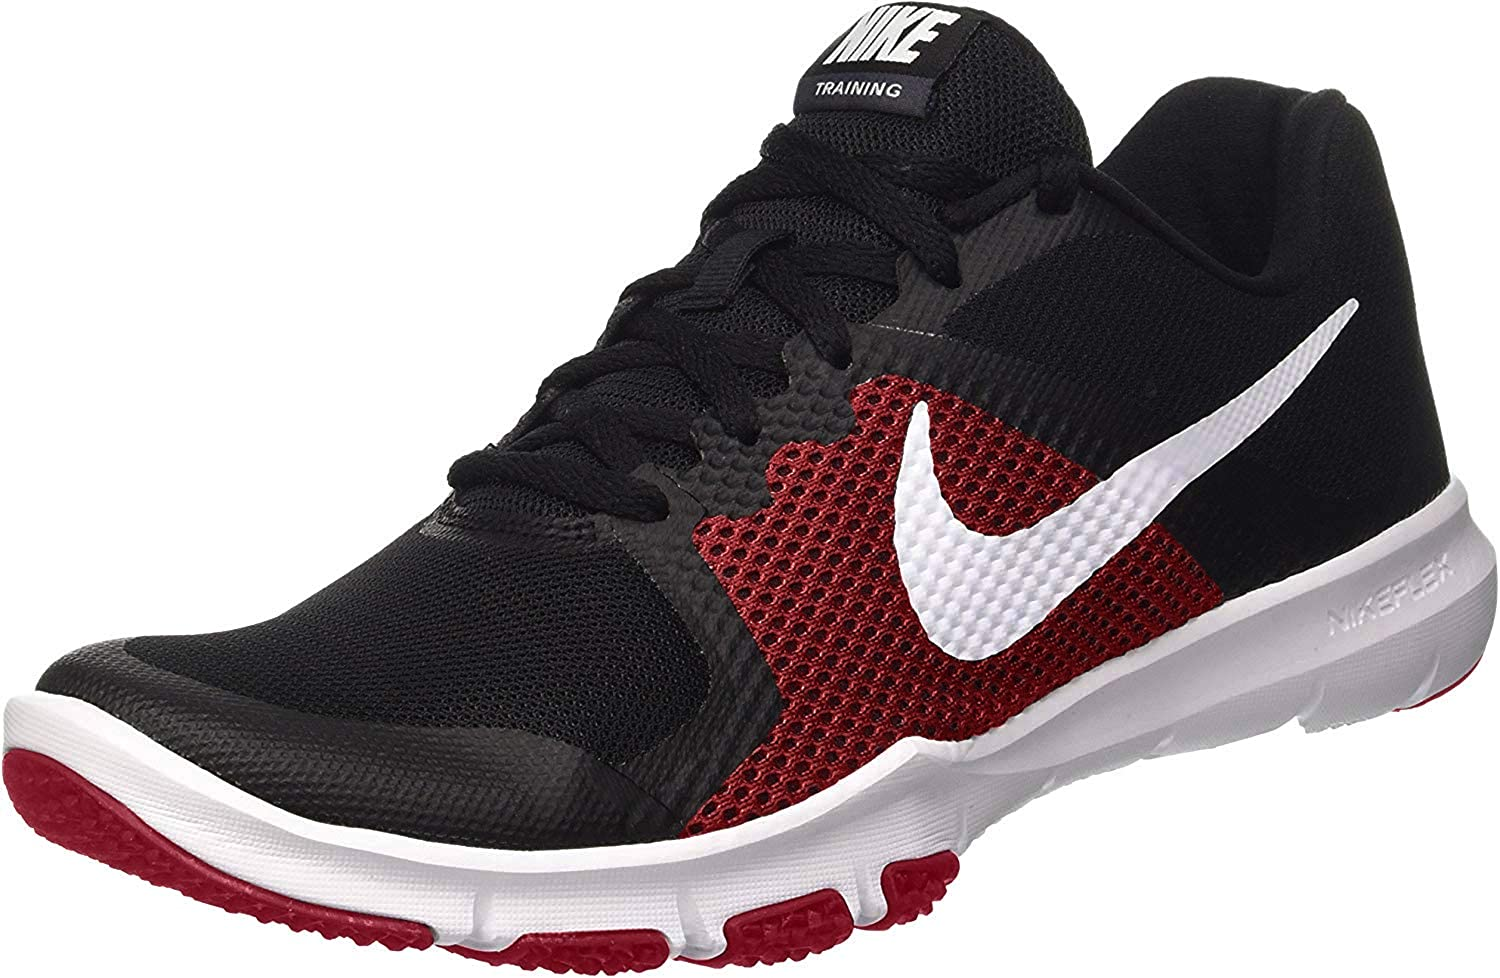 NIKE Men s Flex Control Cross Trainer Shoes